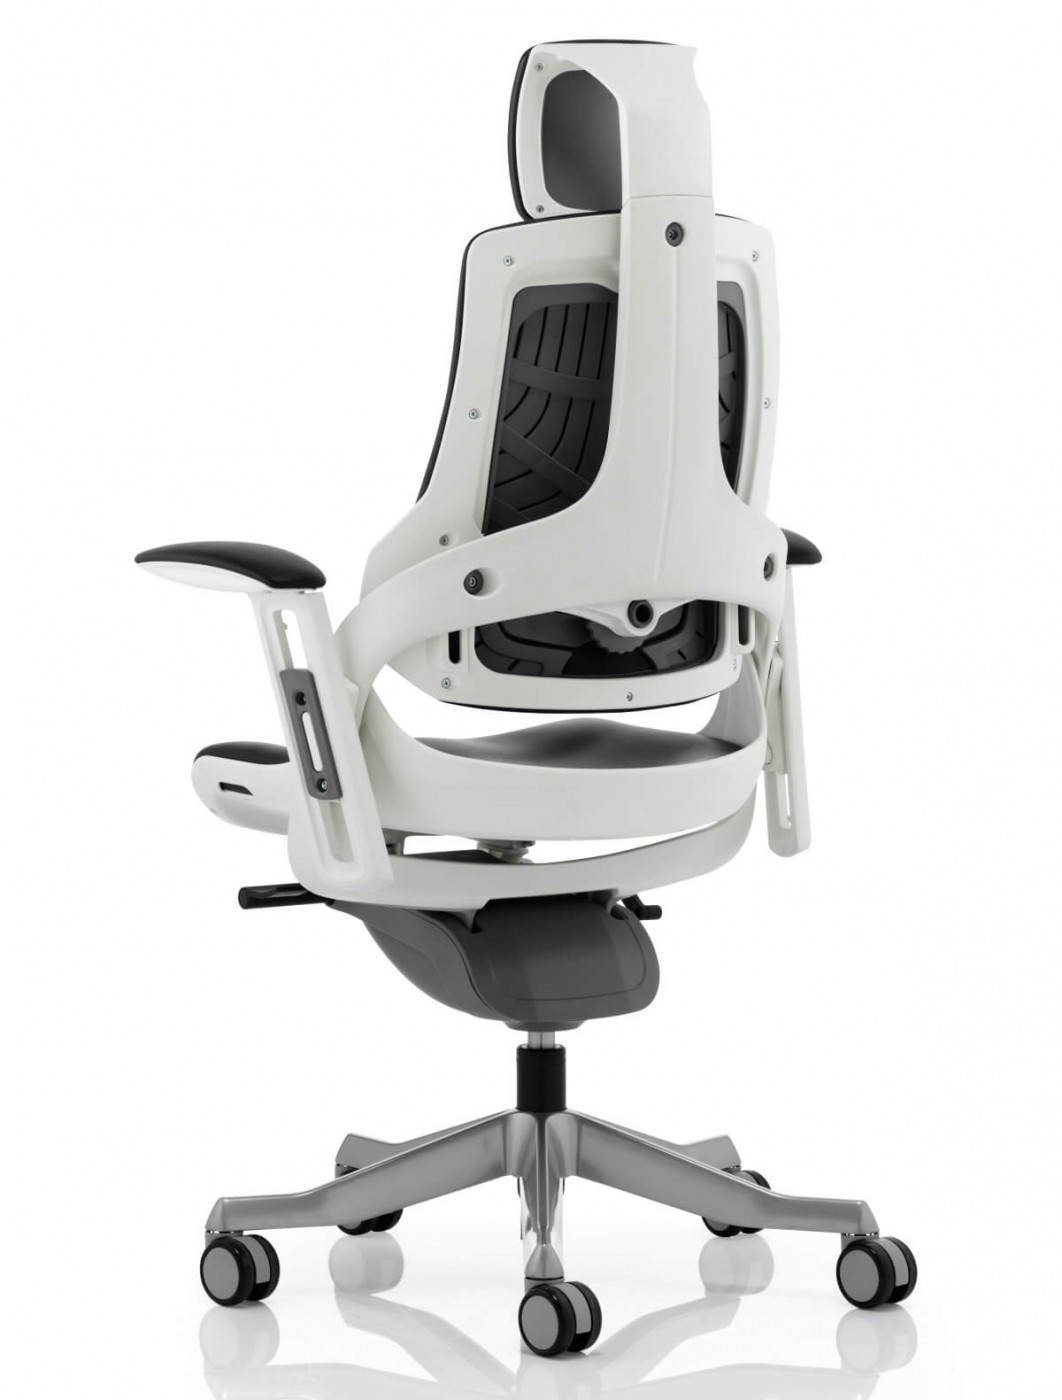 office chair with headrest hanging outdoor uk zure executive leather kc0166 121 bonded enlarged view